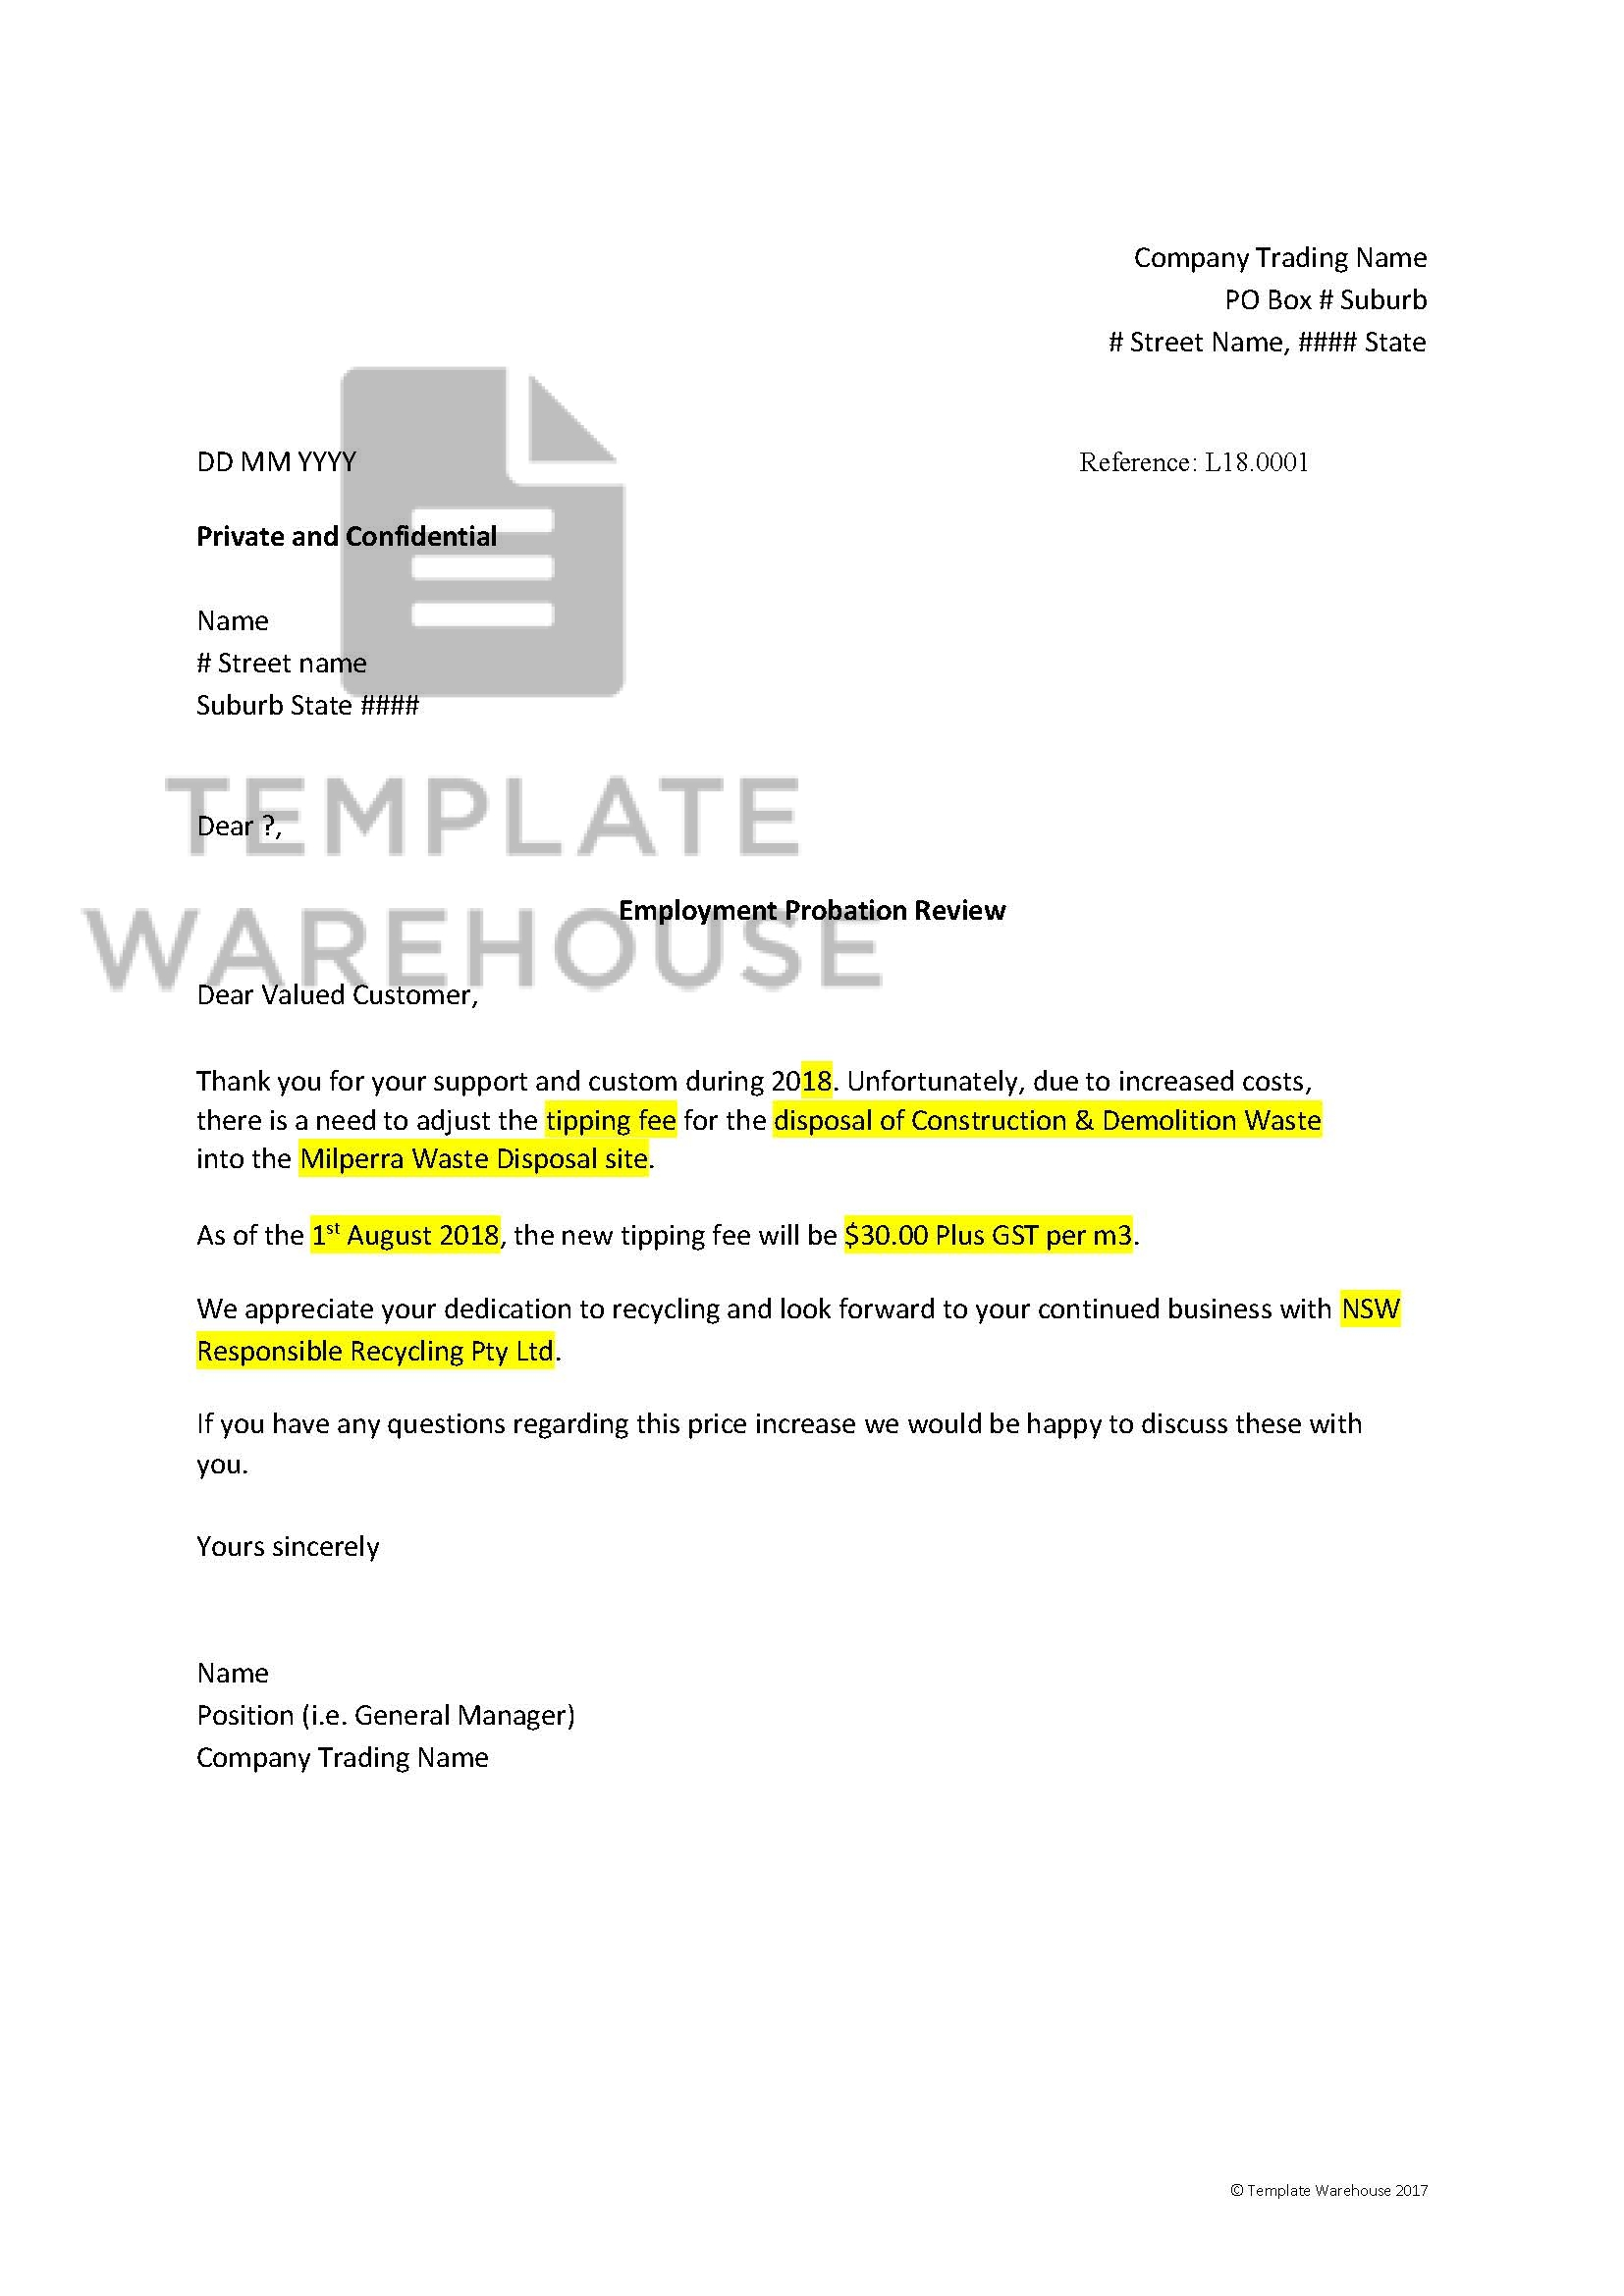 Sample Price Increase Letter To Customers from www.templatewarehouse.com.au